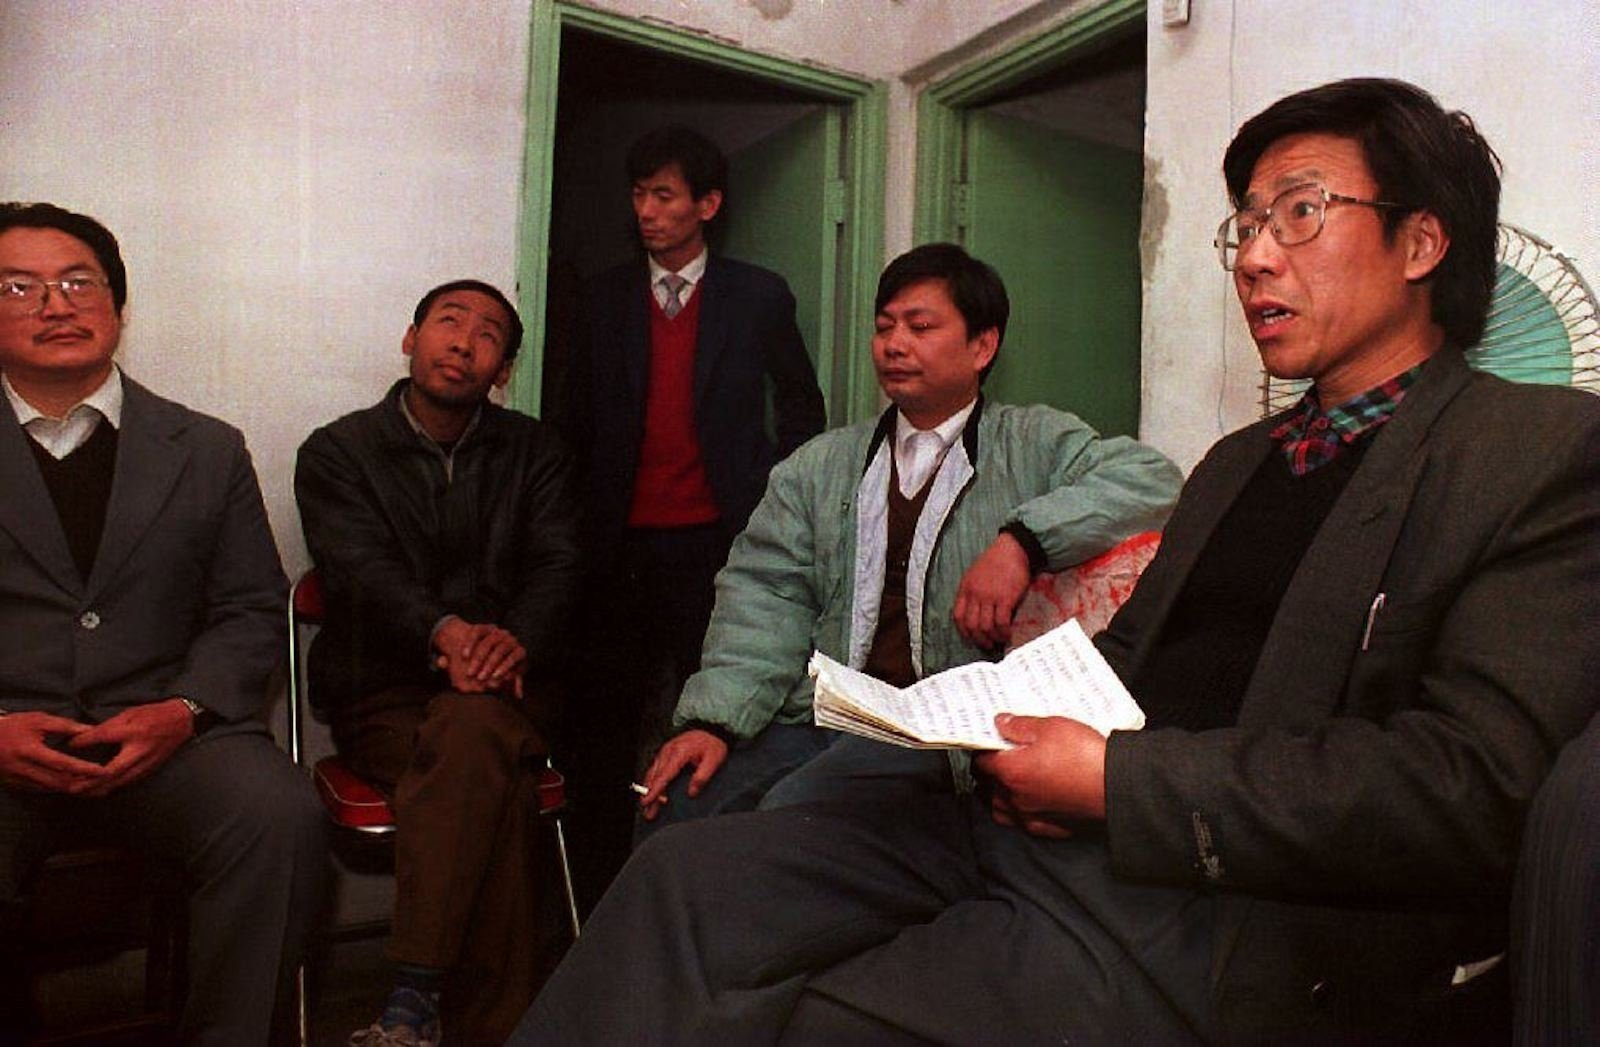 """Qin Yongmin, a longtime pro-democracy activist, has been sentenced to 13 years in a Chinese prison for """"subversion of state power."""""""